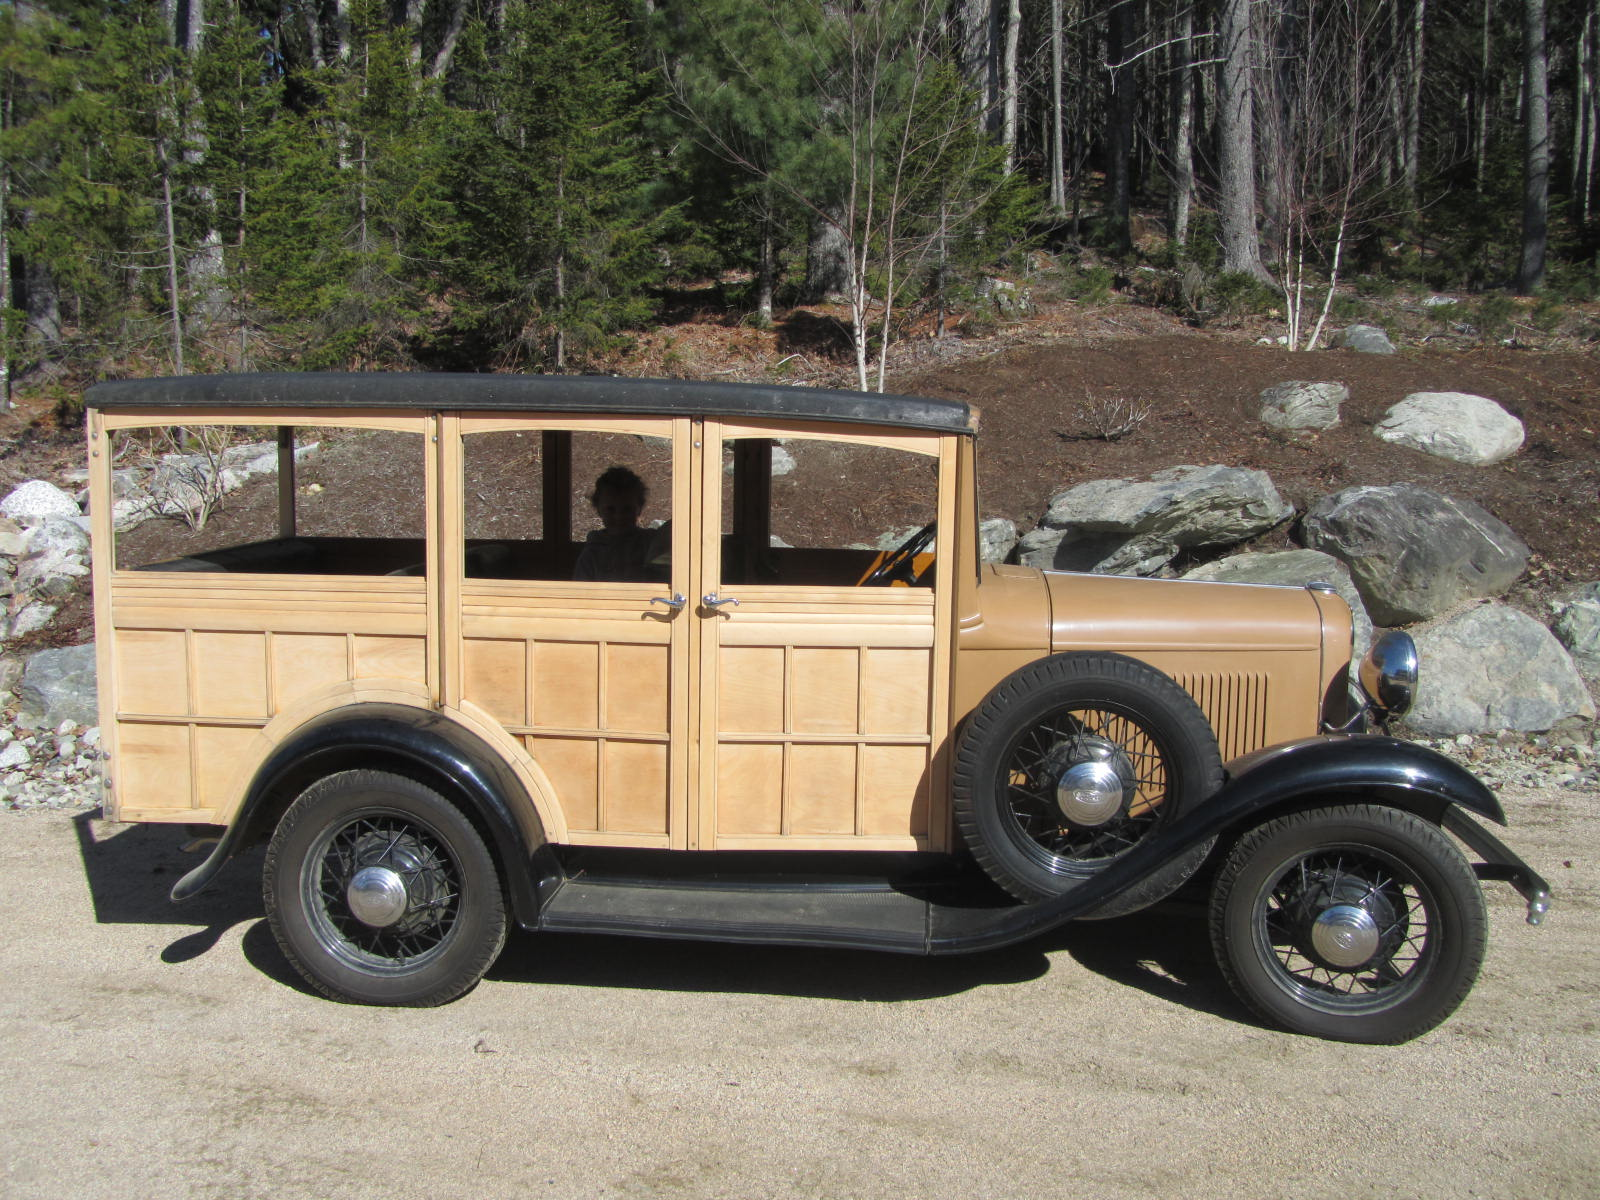 The Next Car Unearthed Was A 1930 Ford Model Town Sedan That Had Been Living In Blue Hill Barn For Thirty Years But Ill Save Most Of